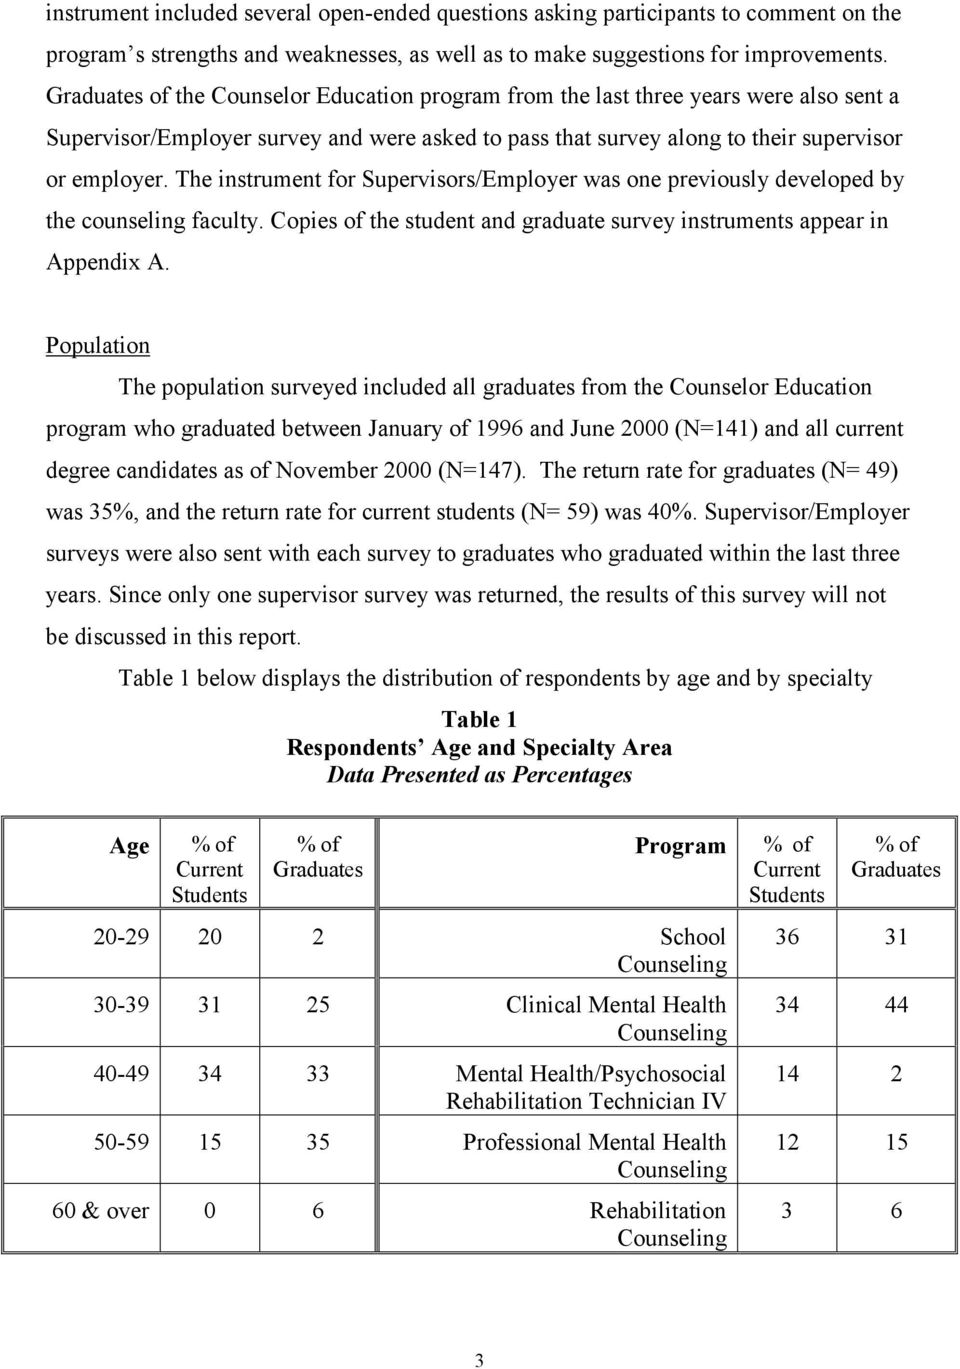 The instrument for Supervisors/Employer was one previously developed by the counseling faculty. Copies of the student and graduate survey instruments appear in Appendix A.